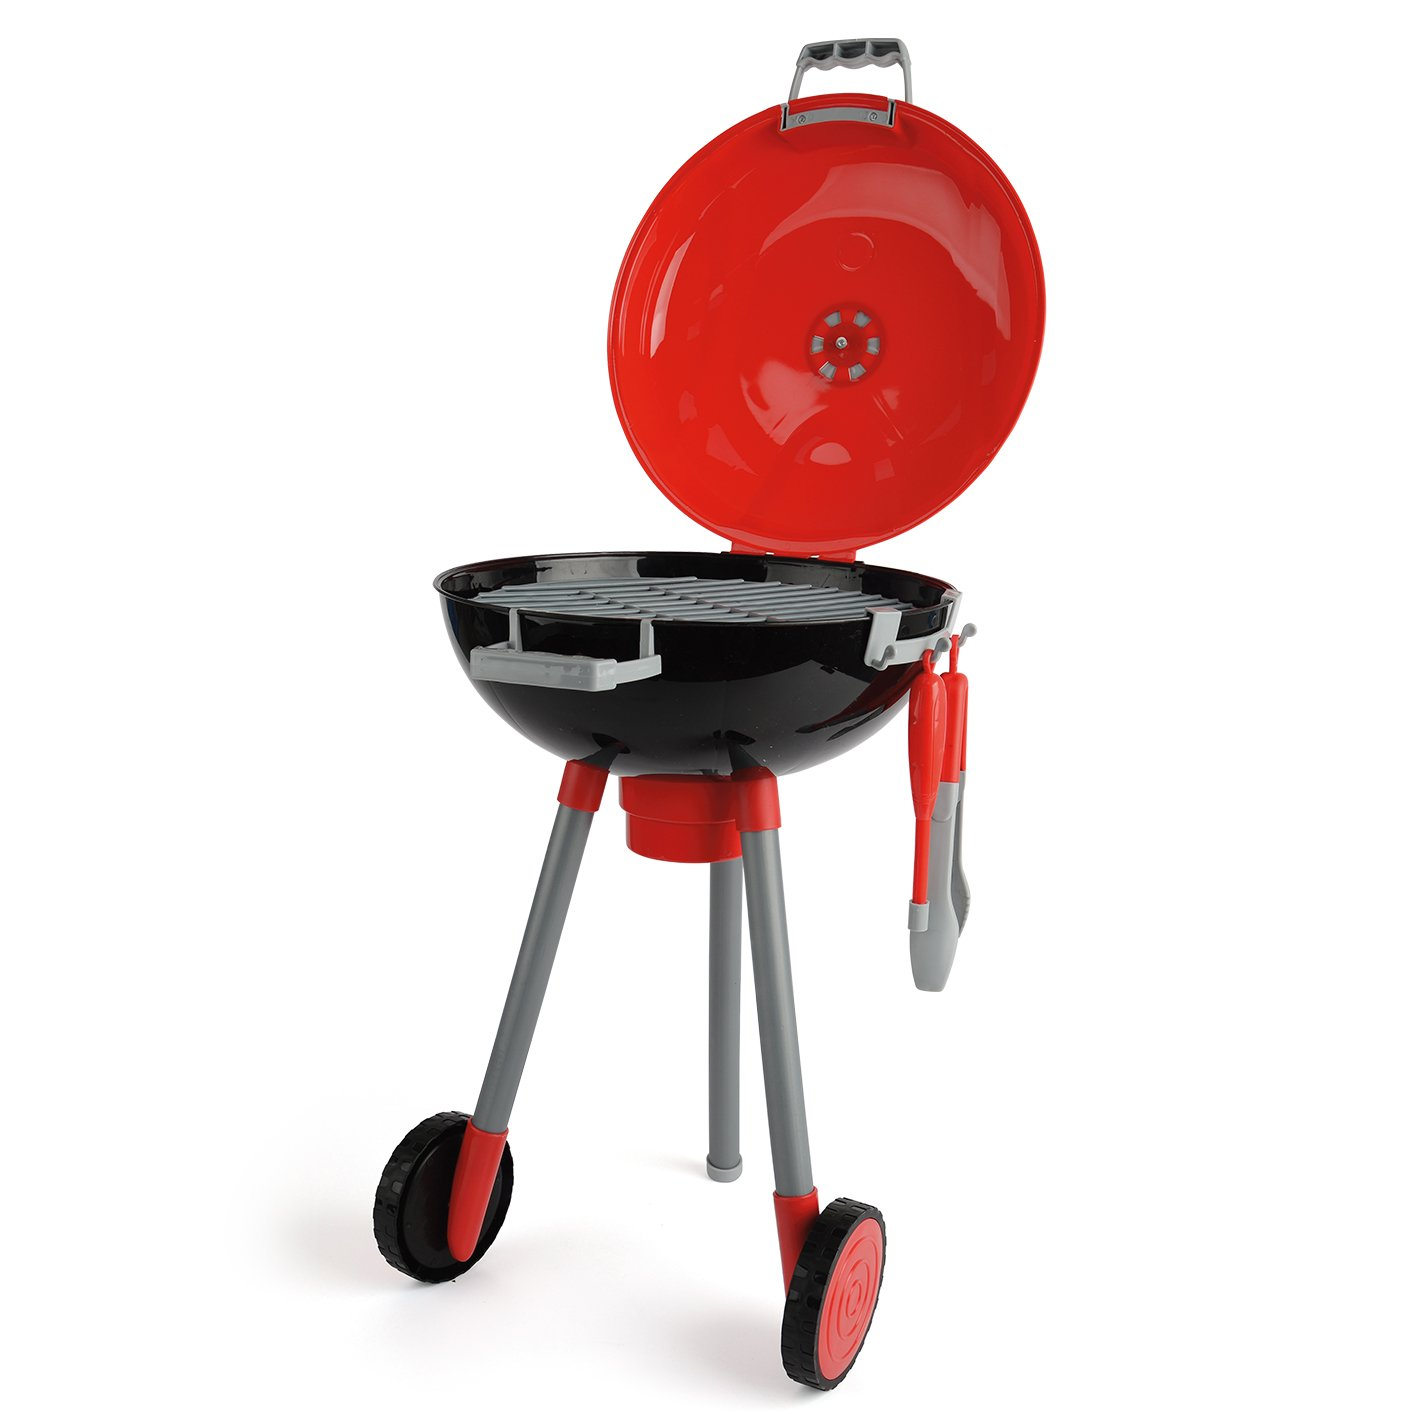 Toyrific Children\'s Toy Barbecue Grill BBQ Play Set: Amazon.co.uk ...